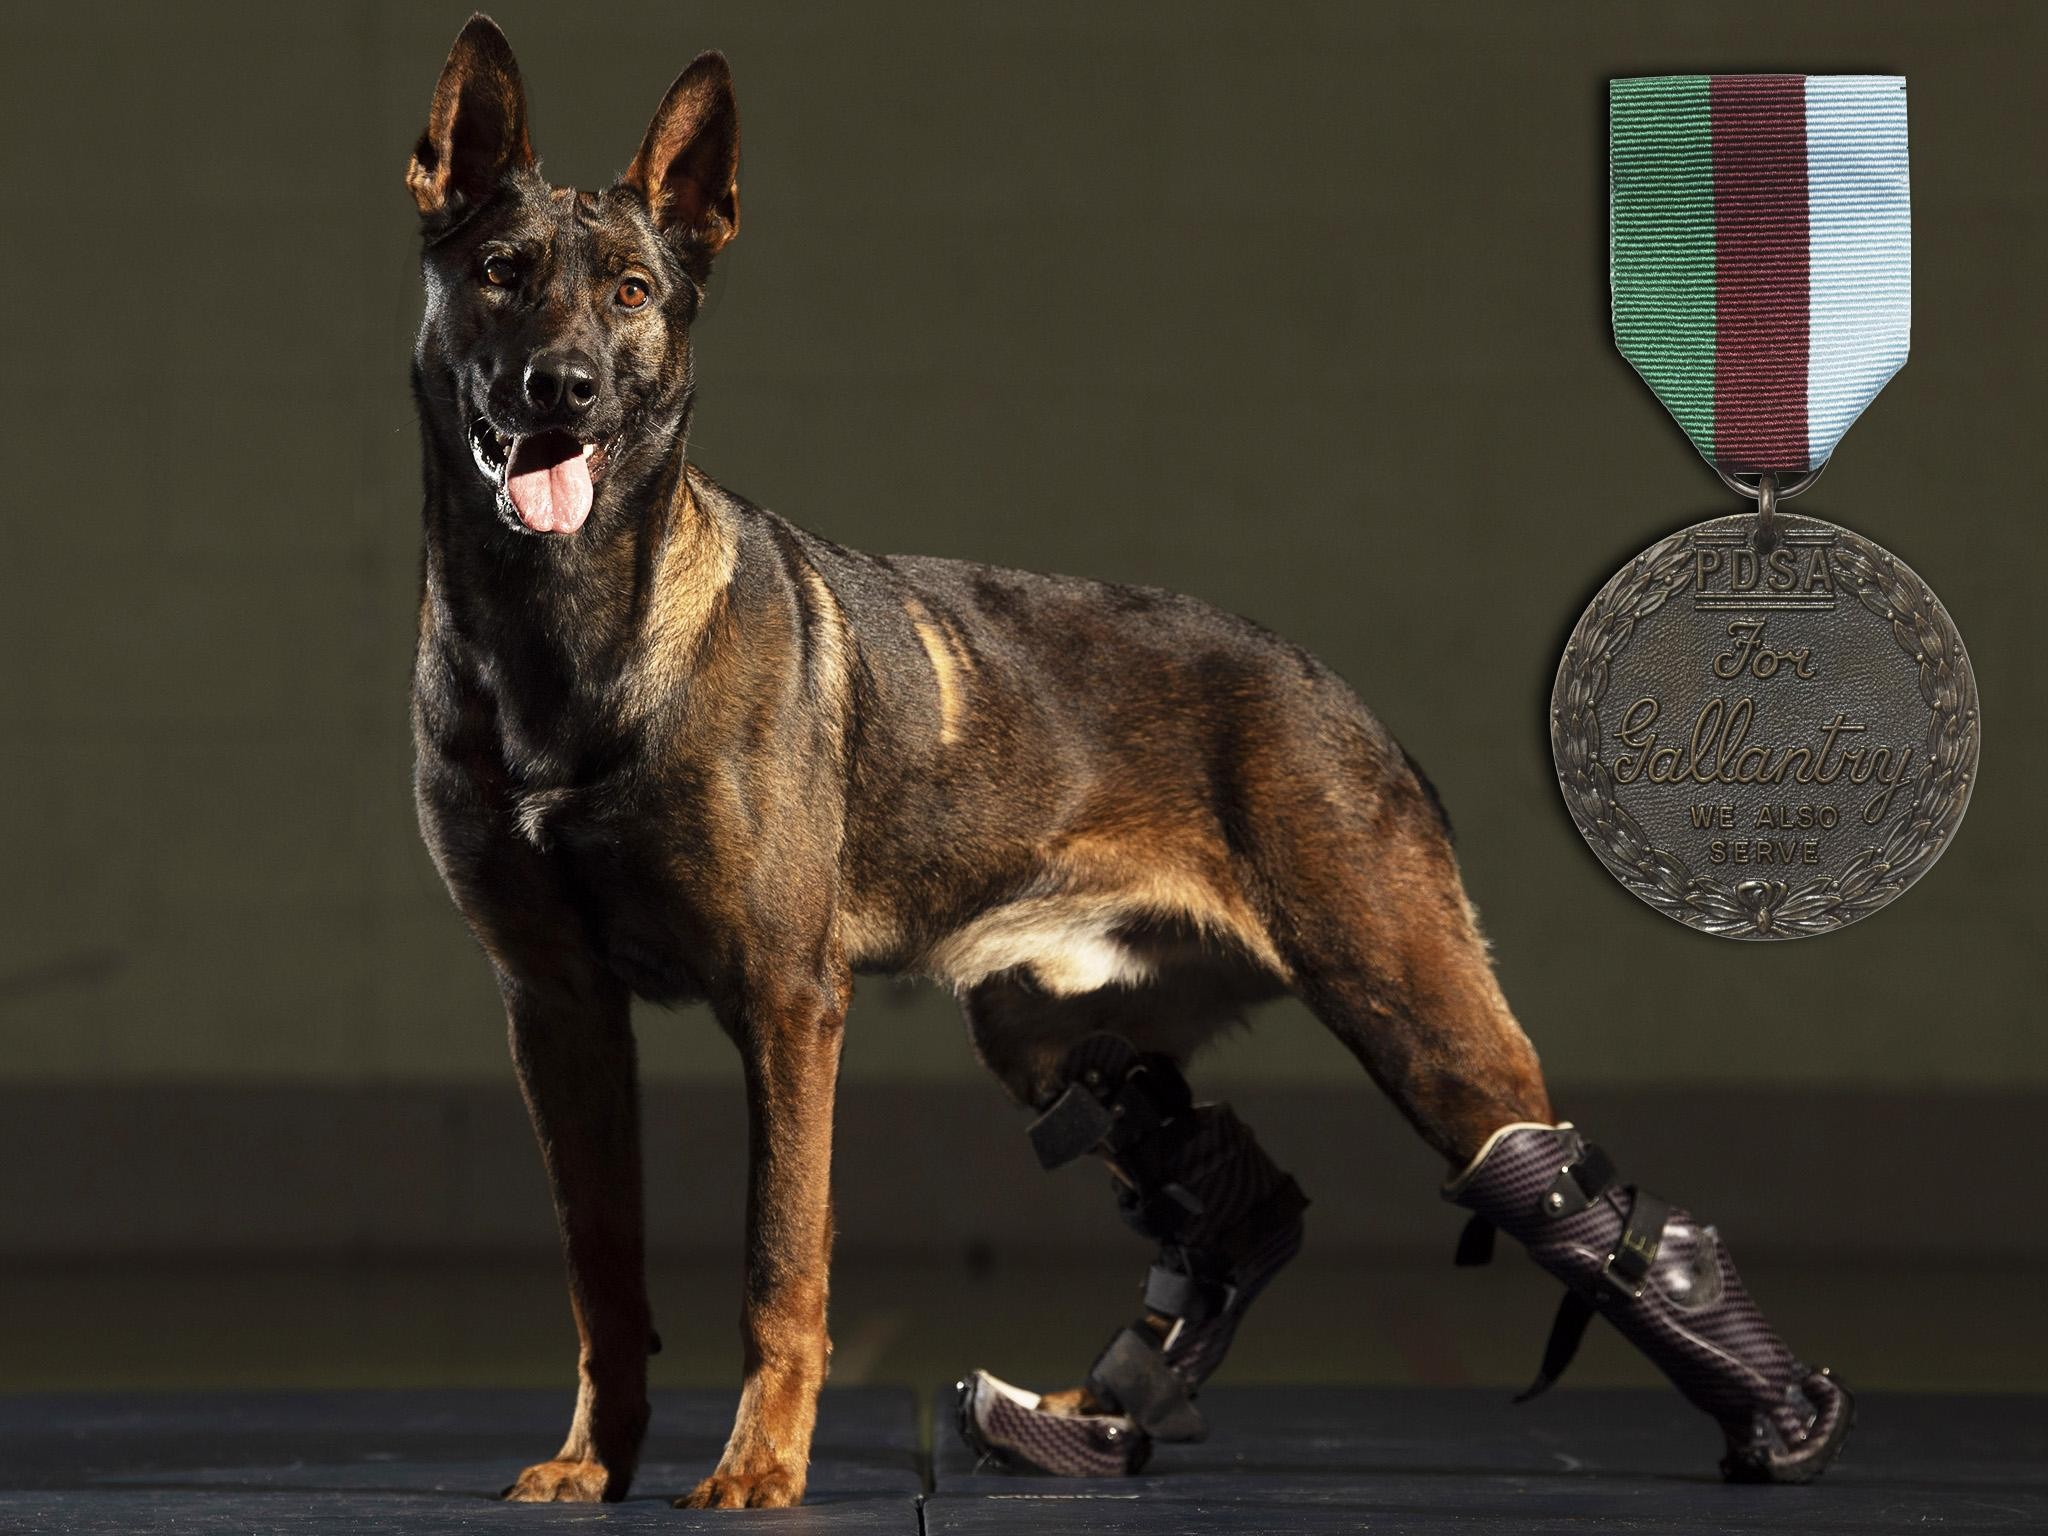 Kuno: Military dog to receive UK's highest honour for animals after he was injured tackling al-Qaeda gunman | The Independent | Independent